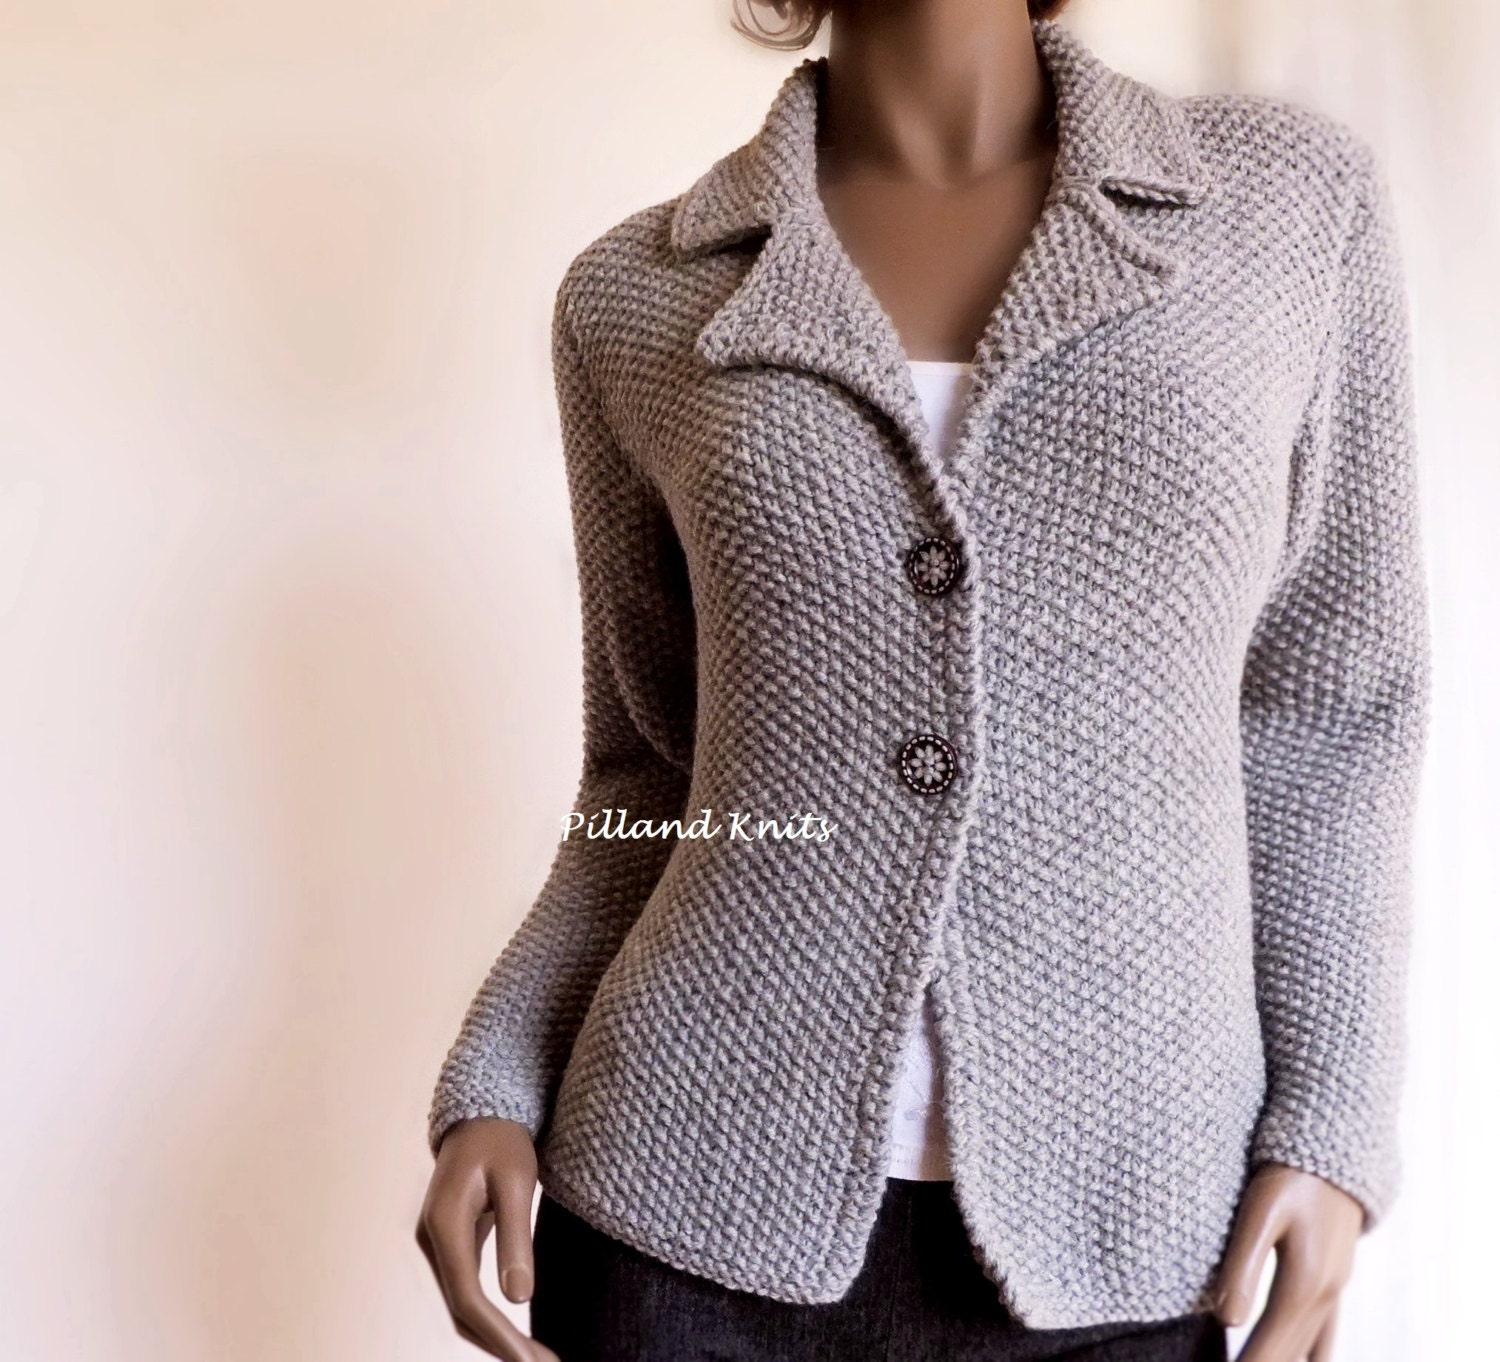 Women's Hand knit Jacket Alpaca Wool sweater Hand Knit